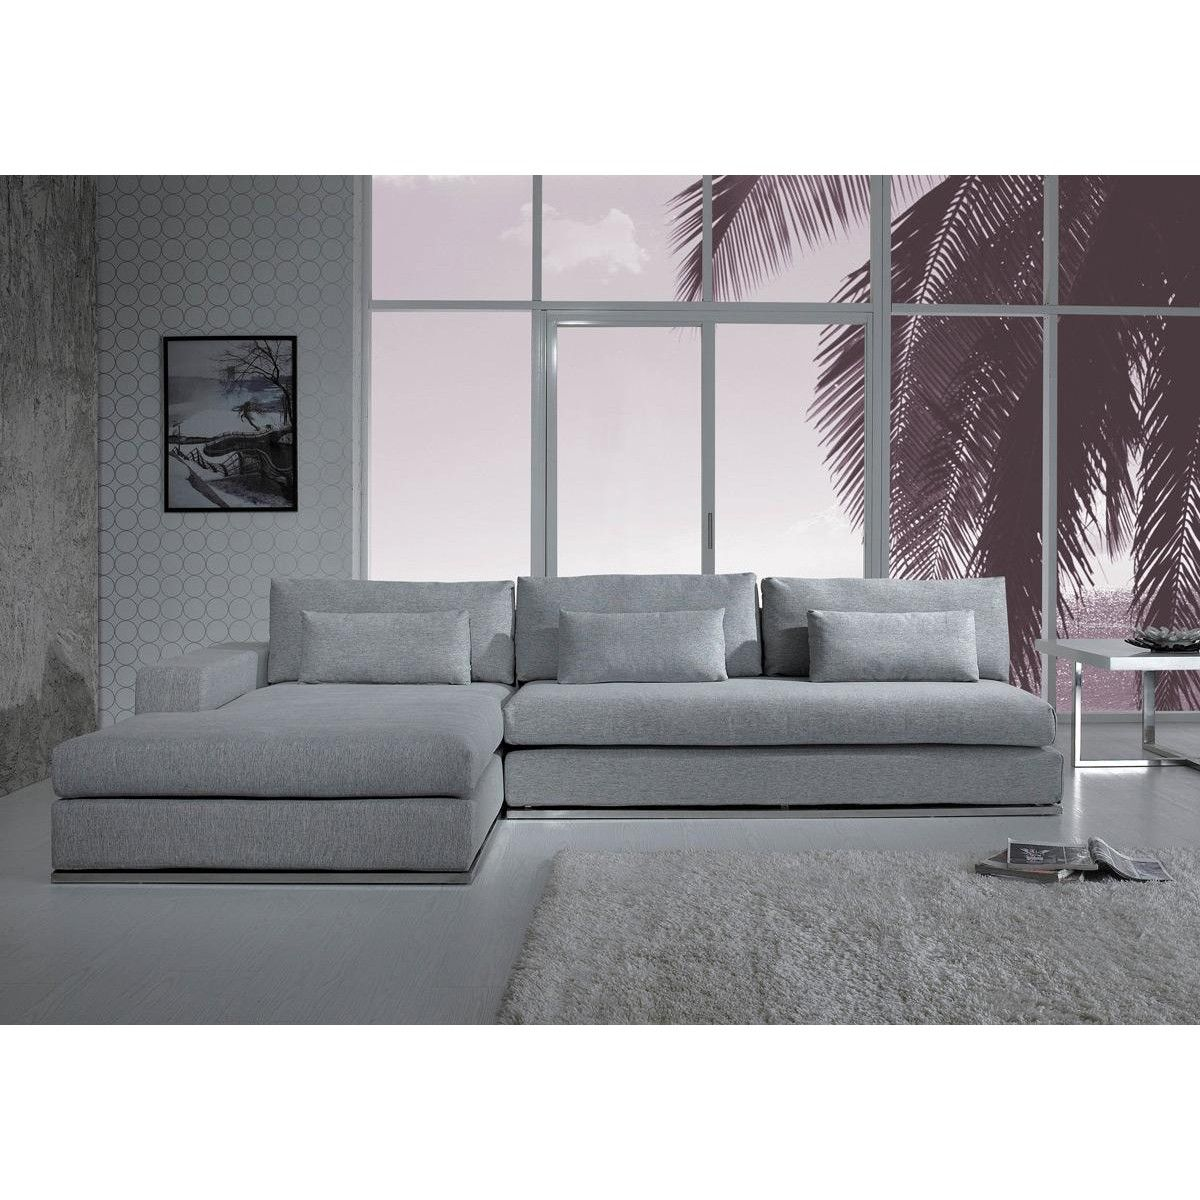 Grey Sectional Modern Style Gray Vig Furniture Sofas Fabric Design